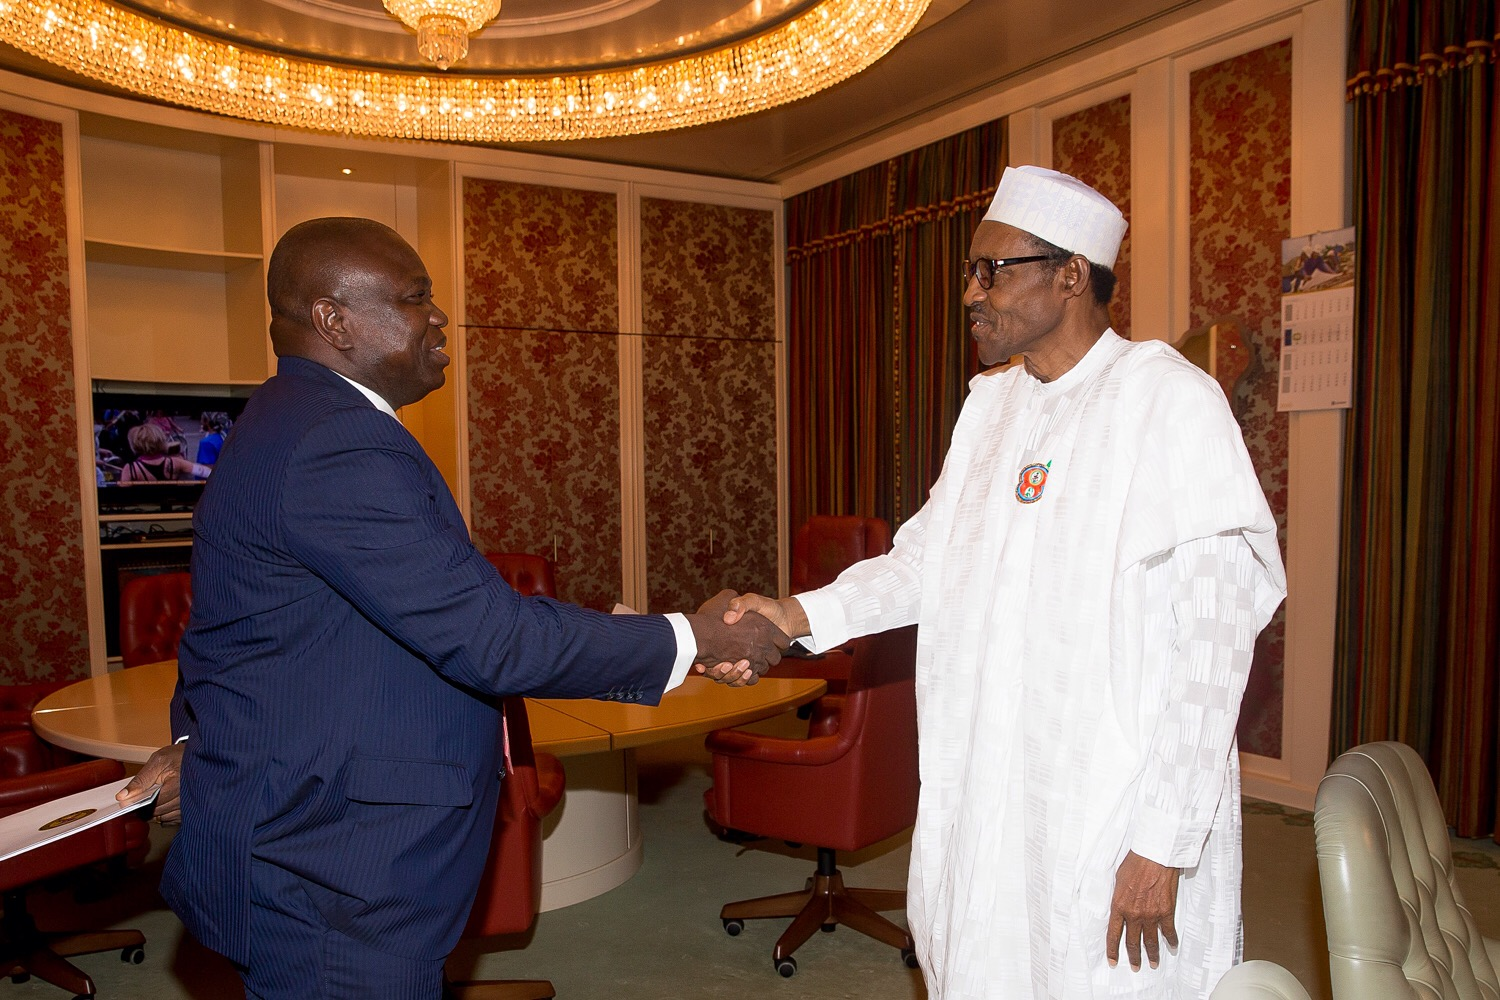 Lagos State Governor, Mr. Akinwunmi Ambode, at a meeting with President Muhammadu Buhari at the Aso Rock Villa in Abuja on Monday, January 11, 2016.